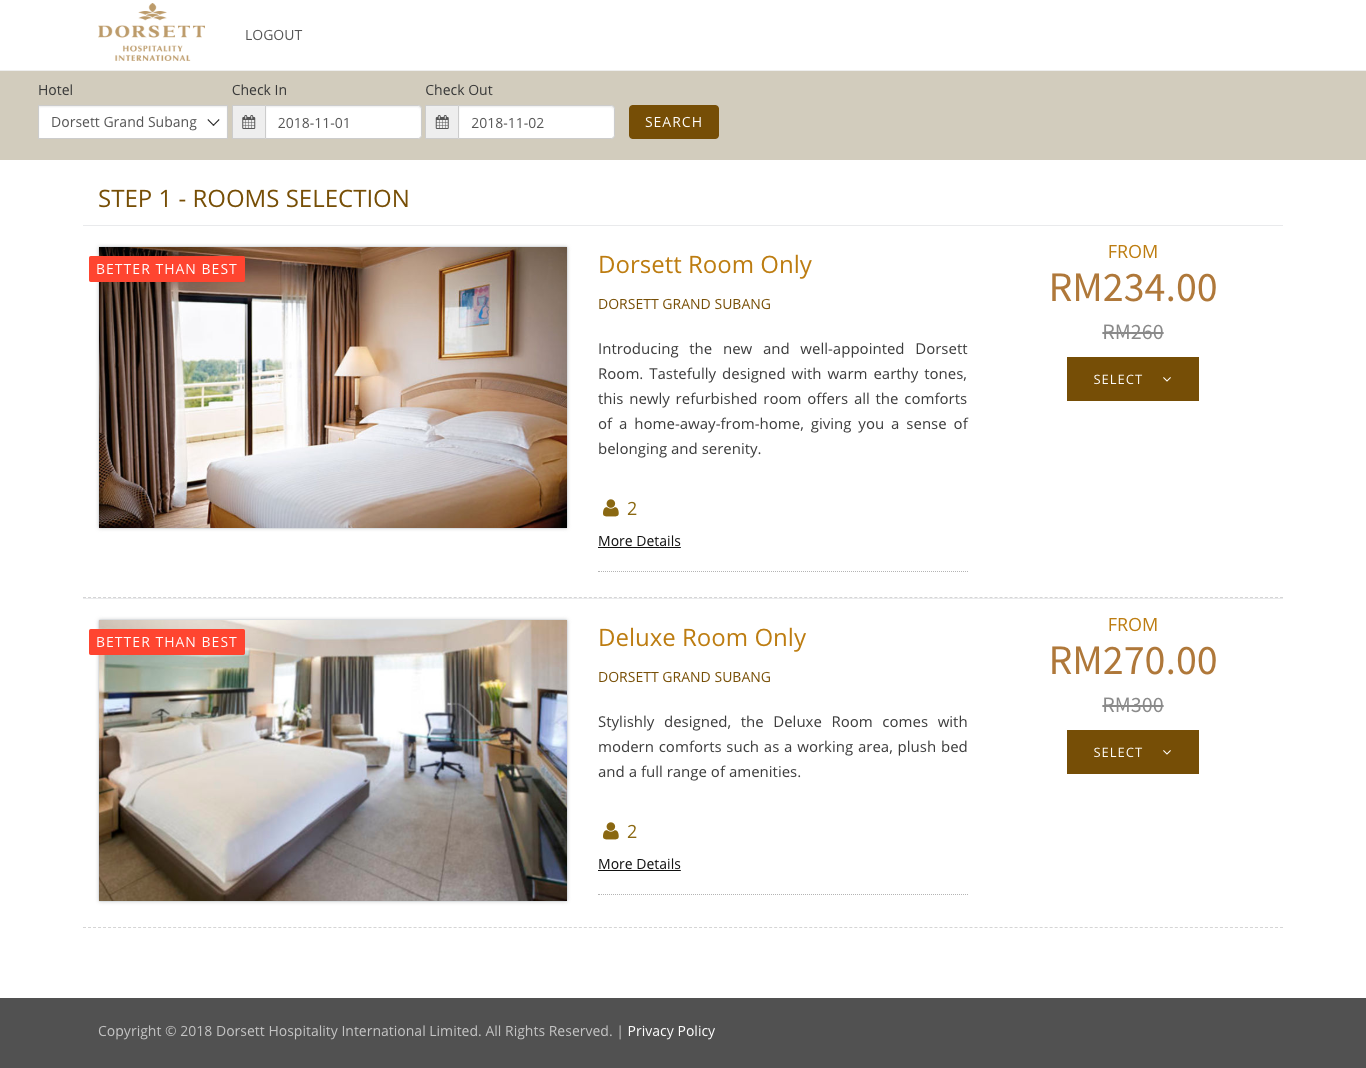 Dorsett Hotels | Corporate Rates for Malaysia Hotels